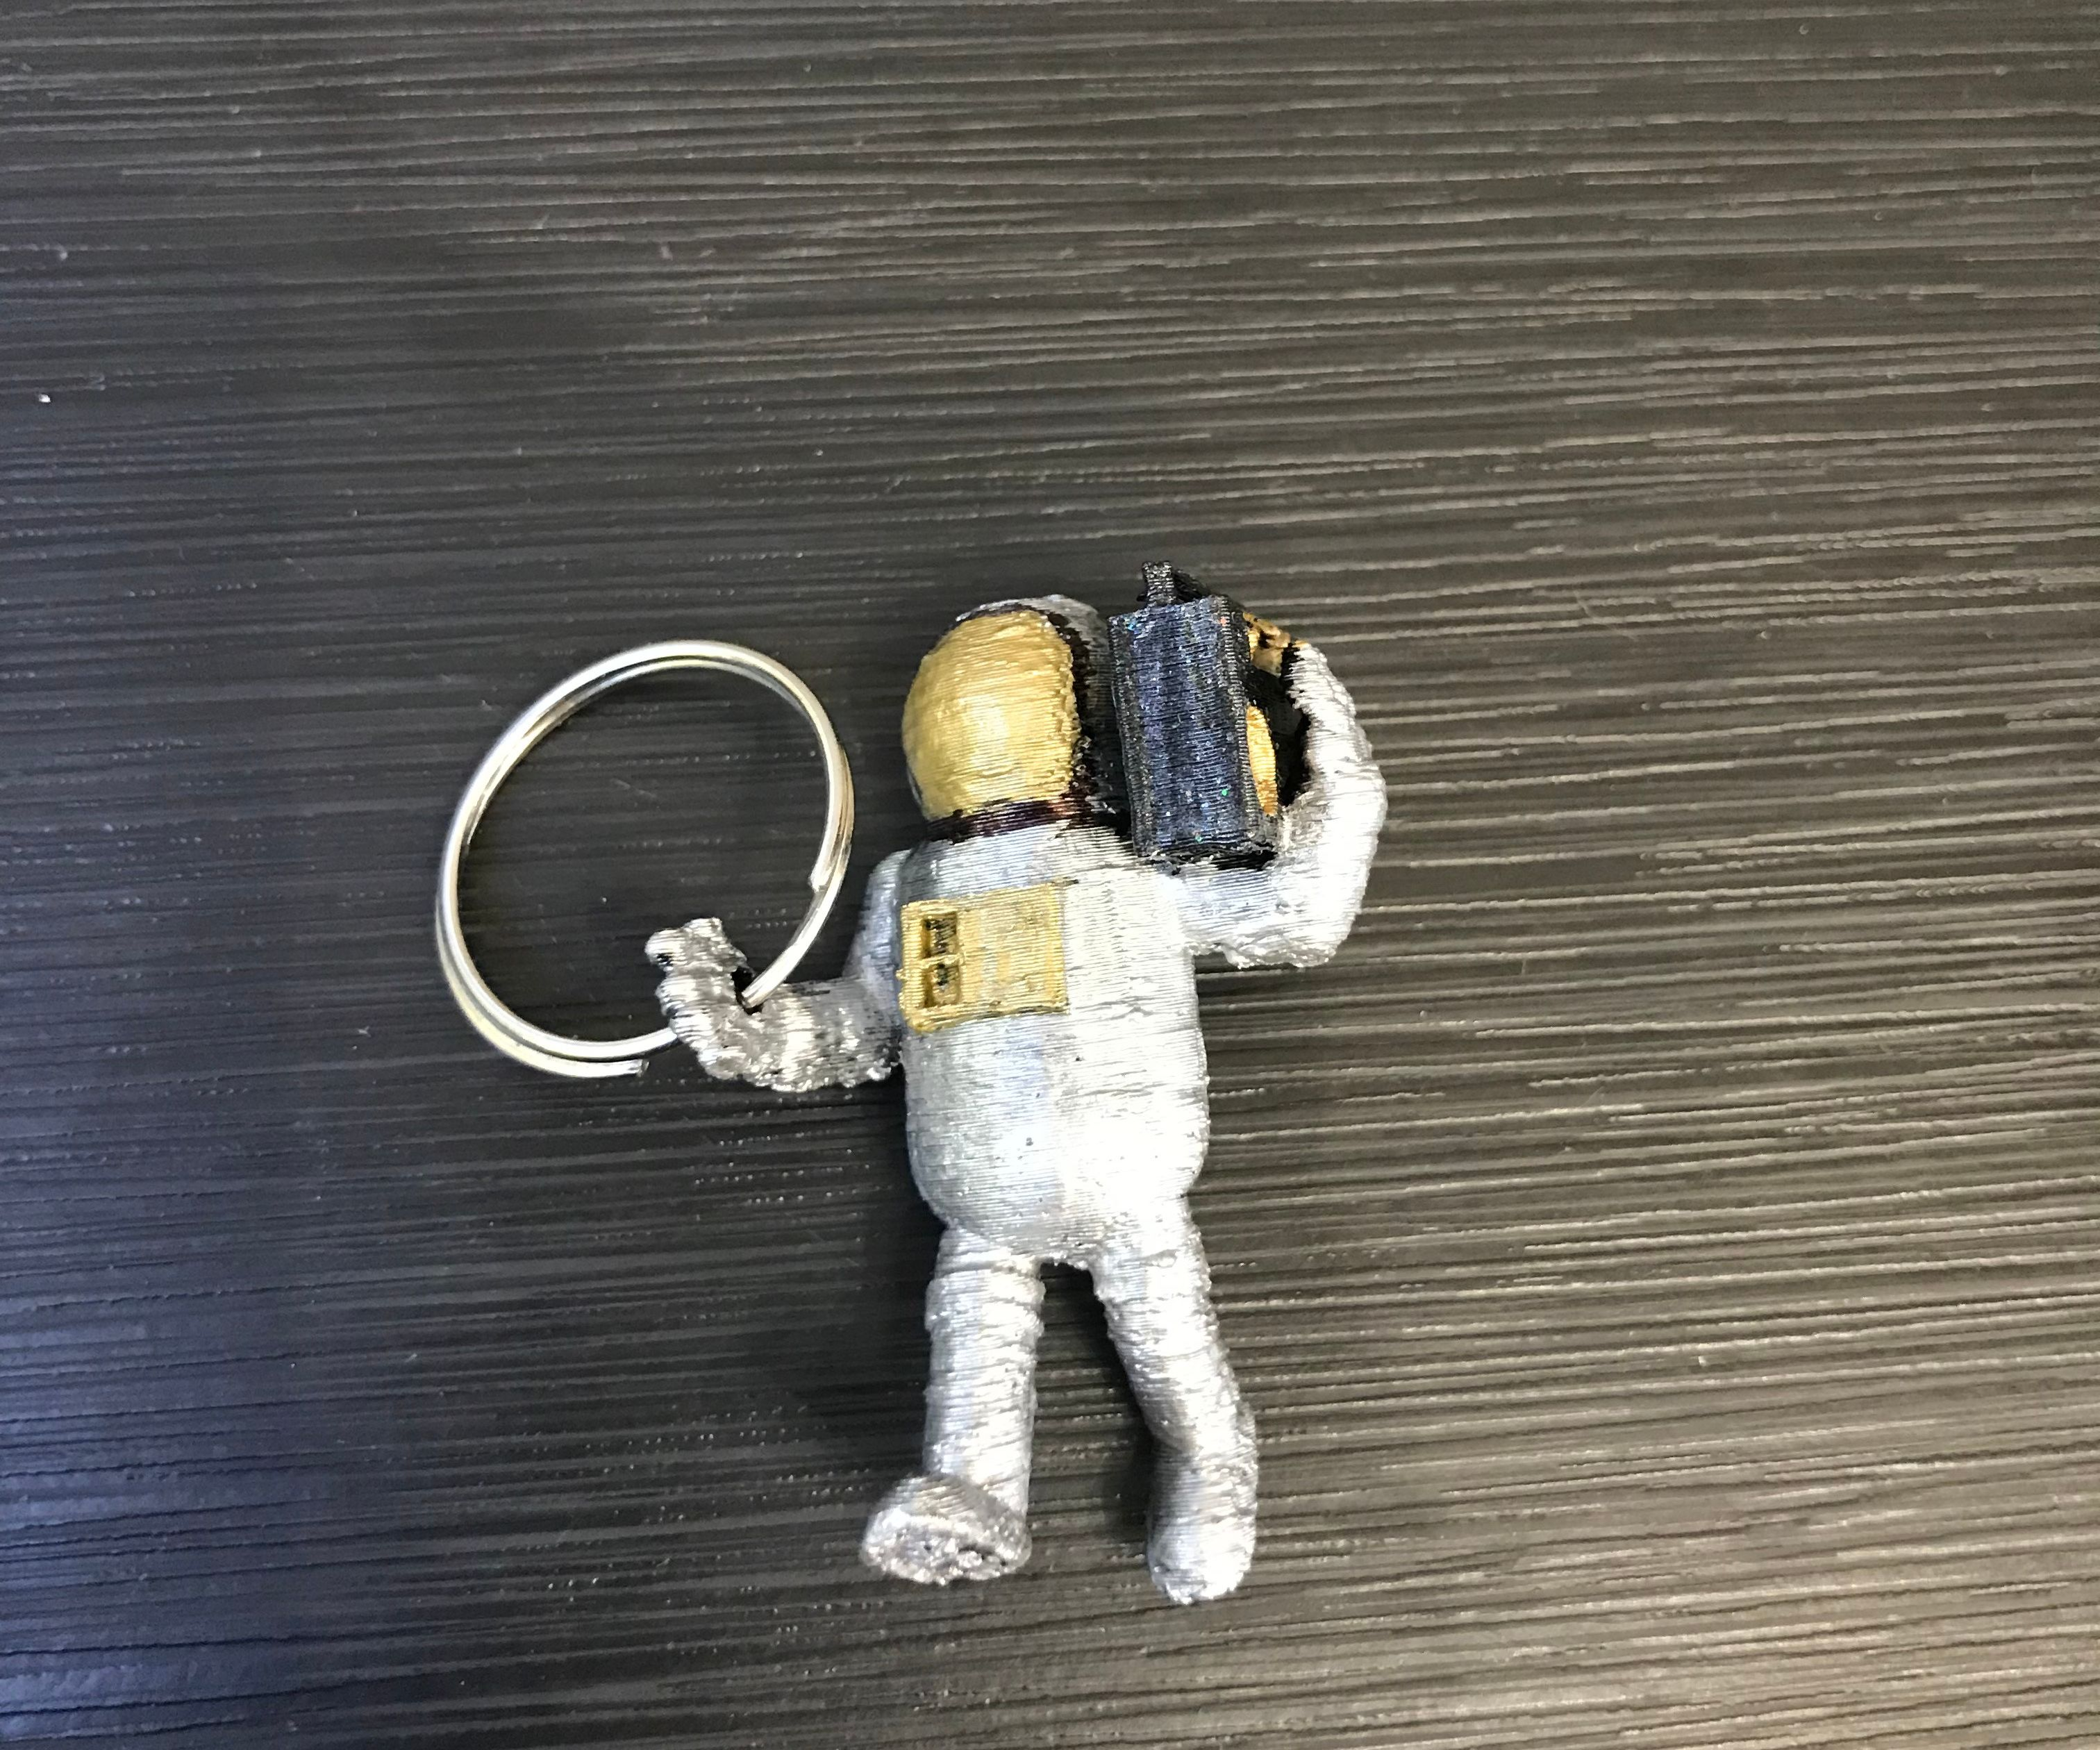 3D Printed Astronaut Keychain (How to Make an Existing 3D Print Into a Keychain)